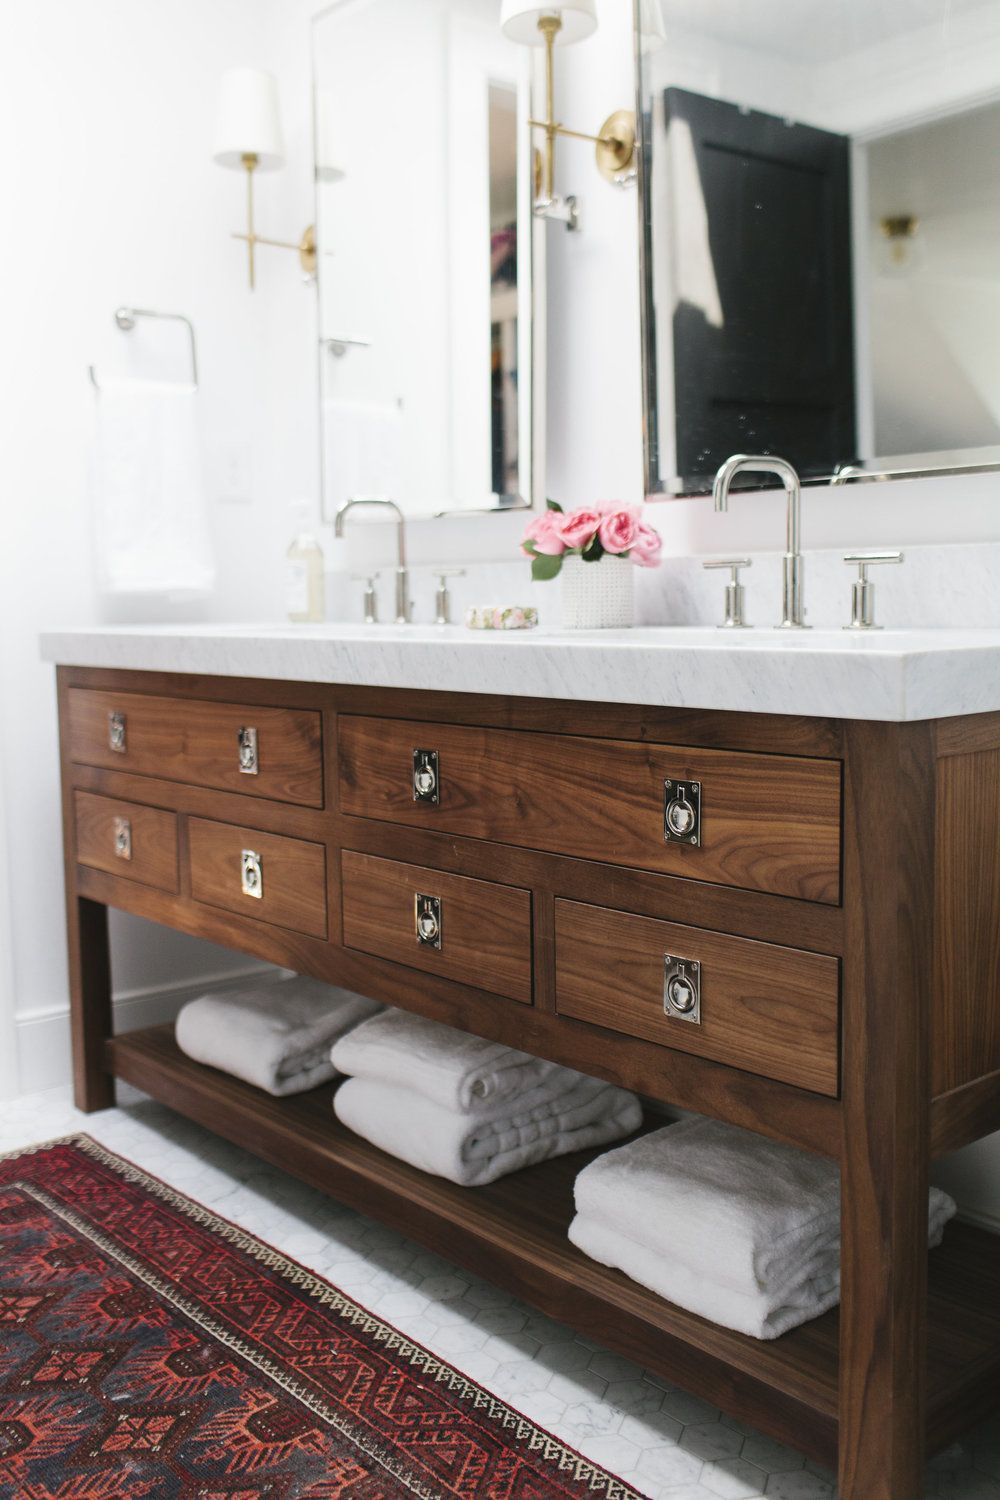 Bathroom vanity with drawers and an open shelf